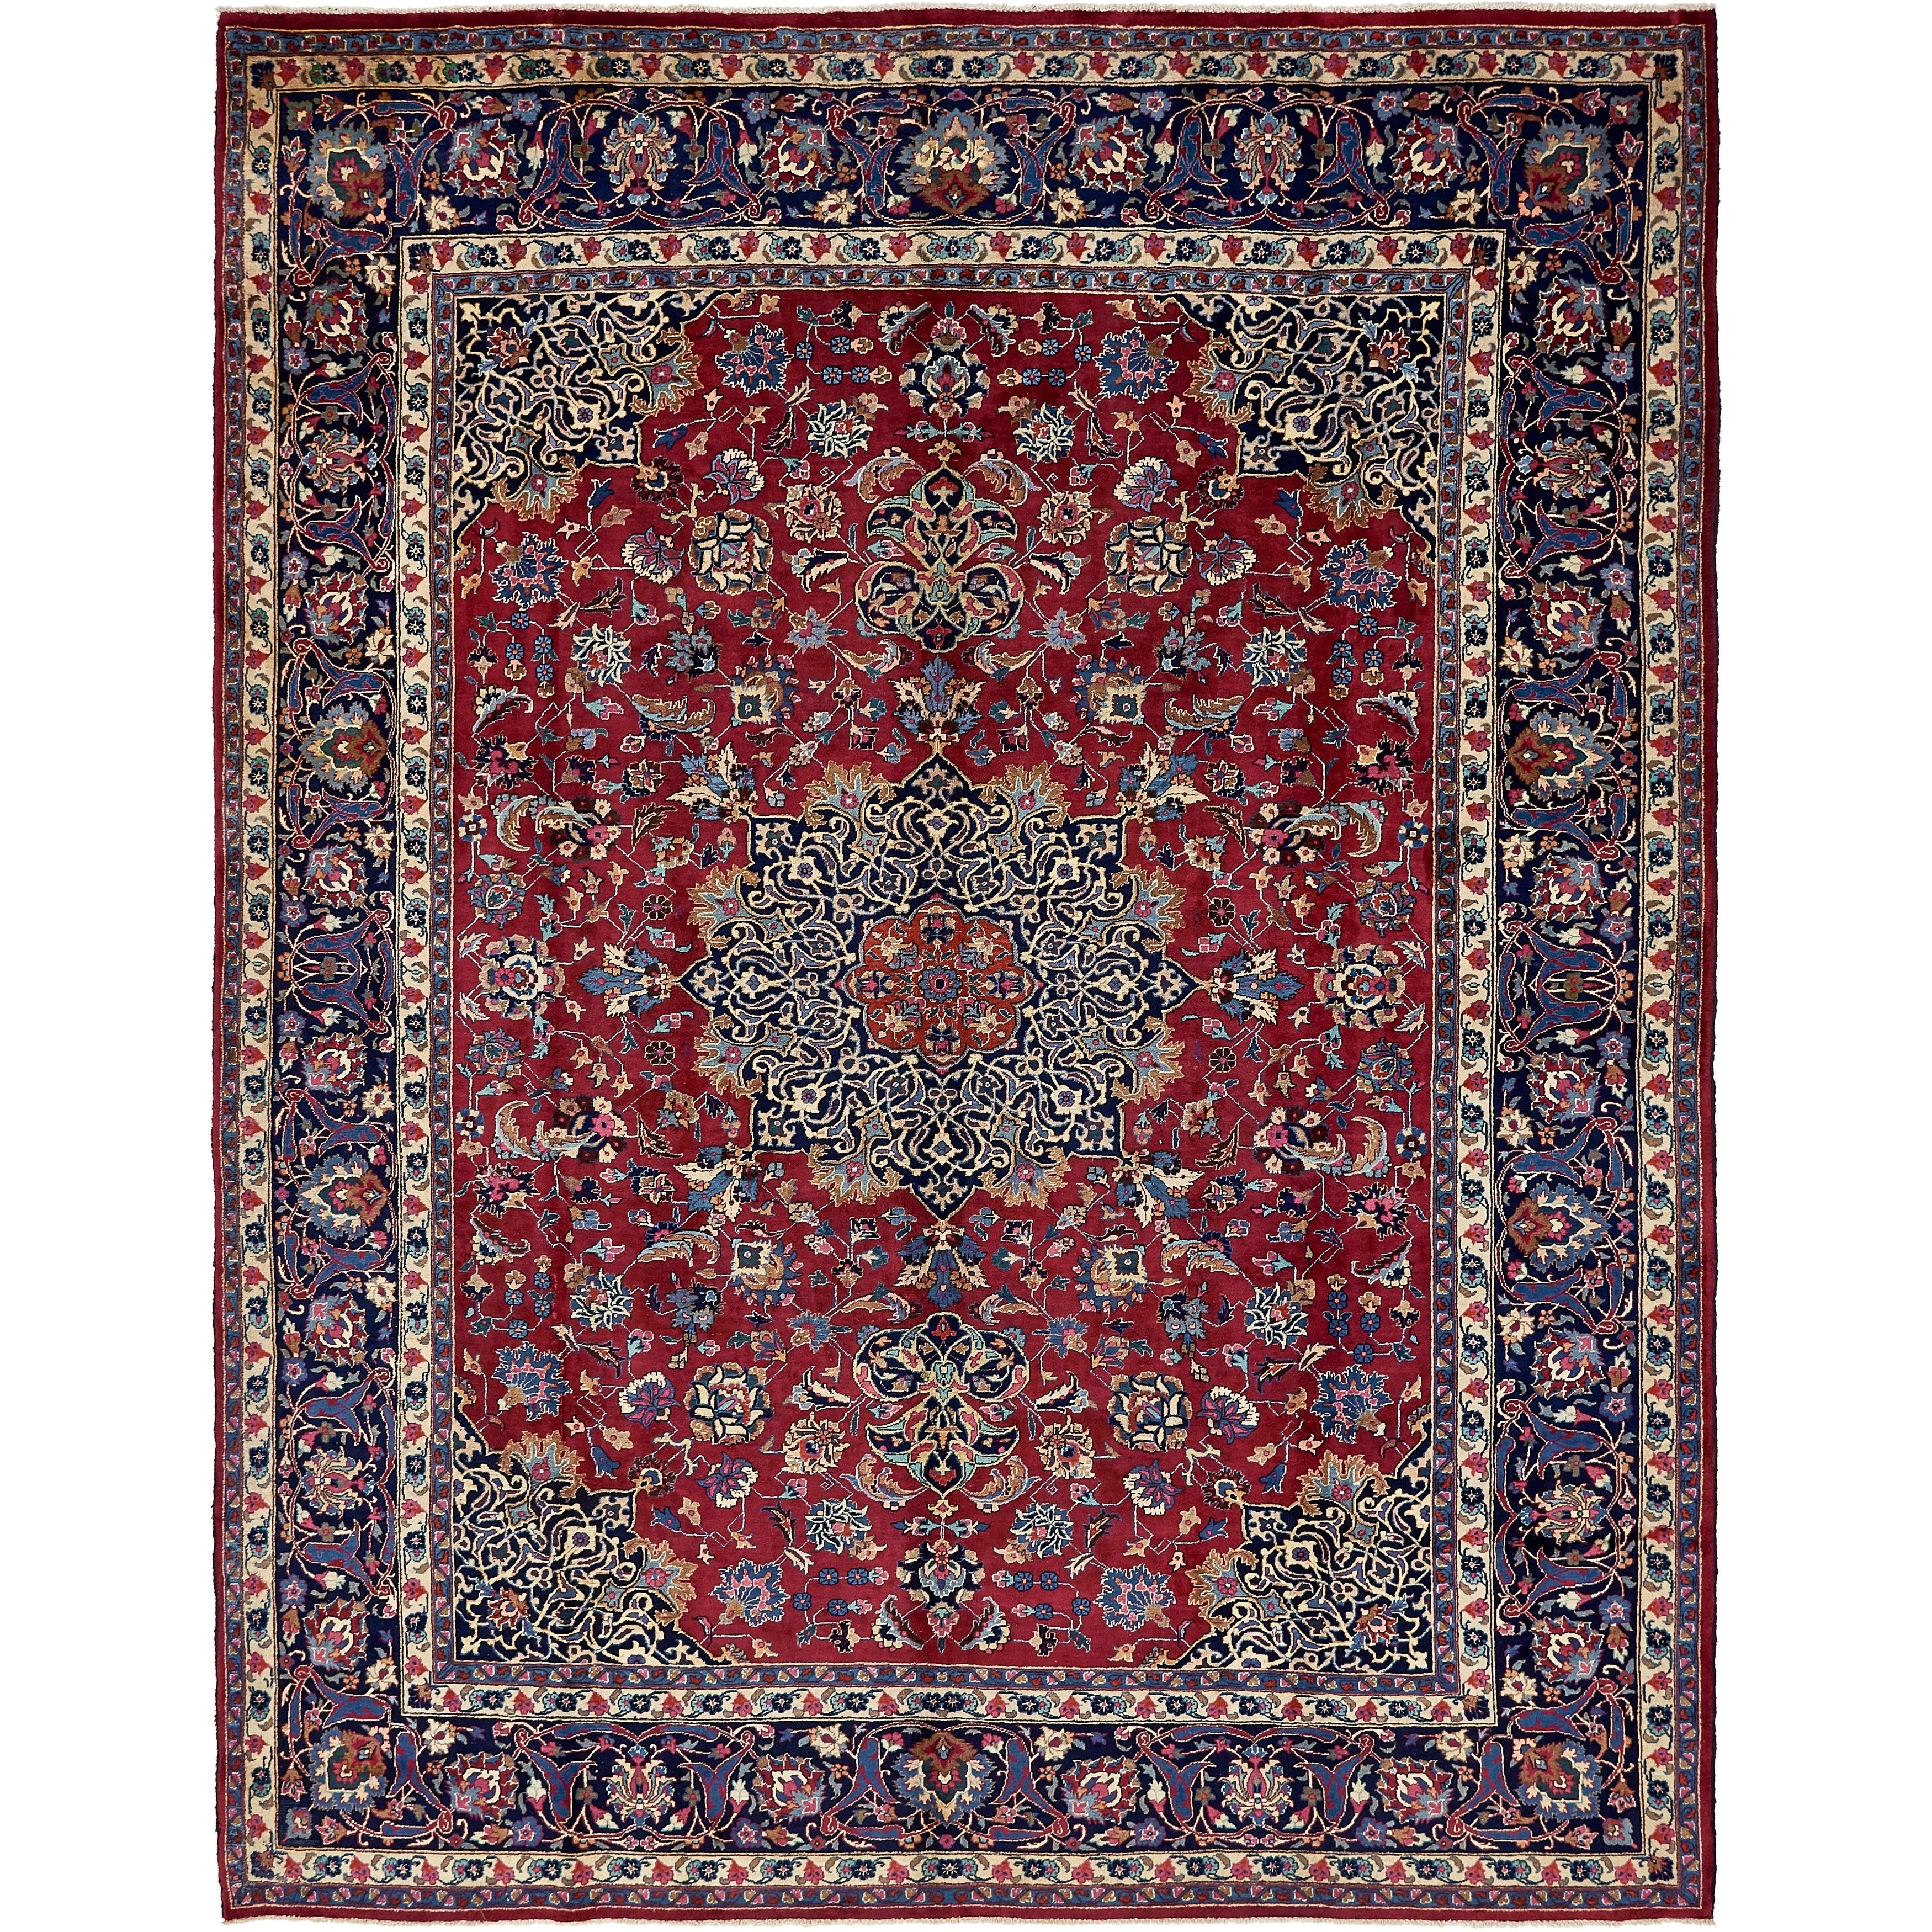 Hand Knotted Kashmar Semi Antique Wool Area Rug - 10 x 12 9 (Red - 10 x 12 9)